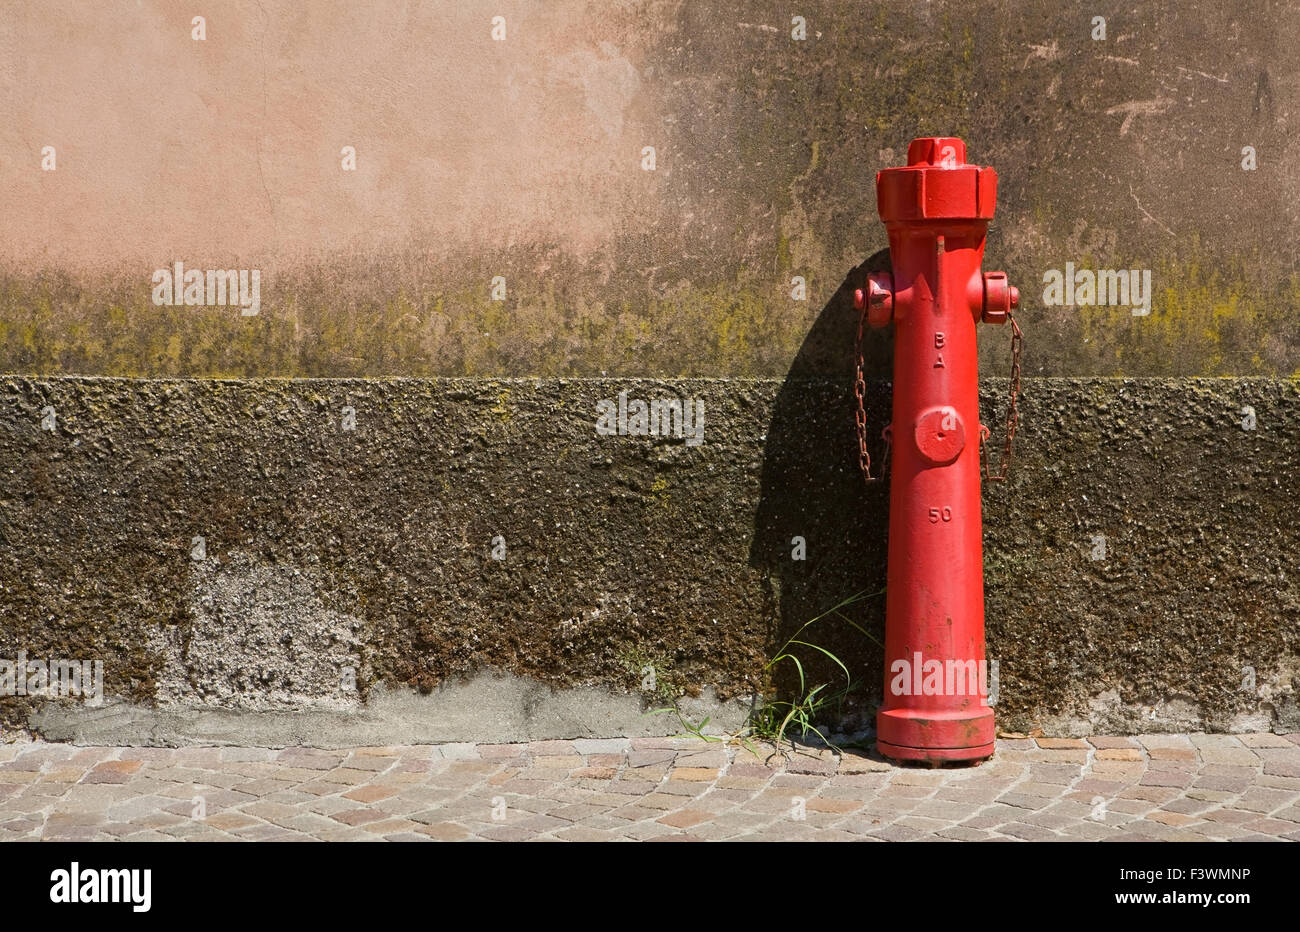 fire faucet Stock Photo: 88460898 - Alamy